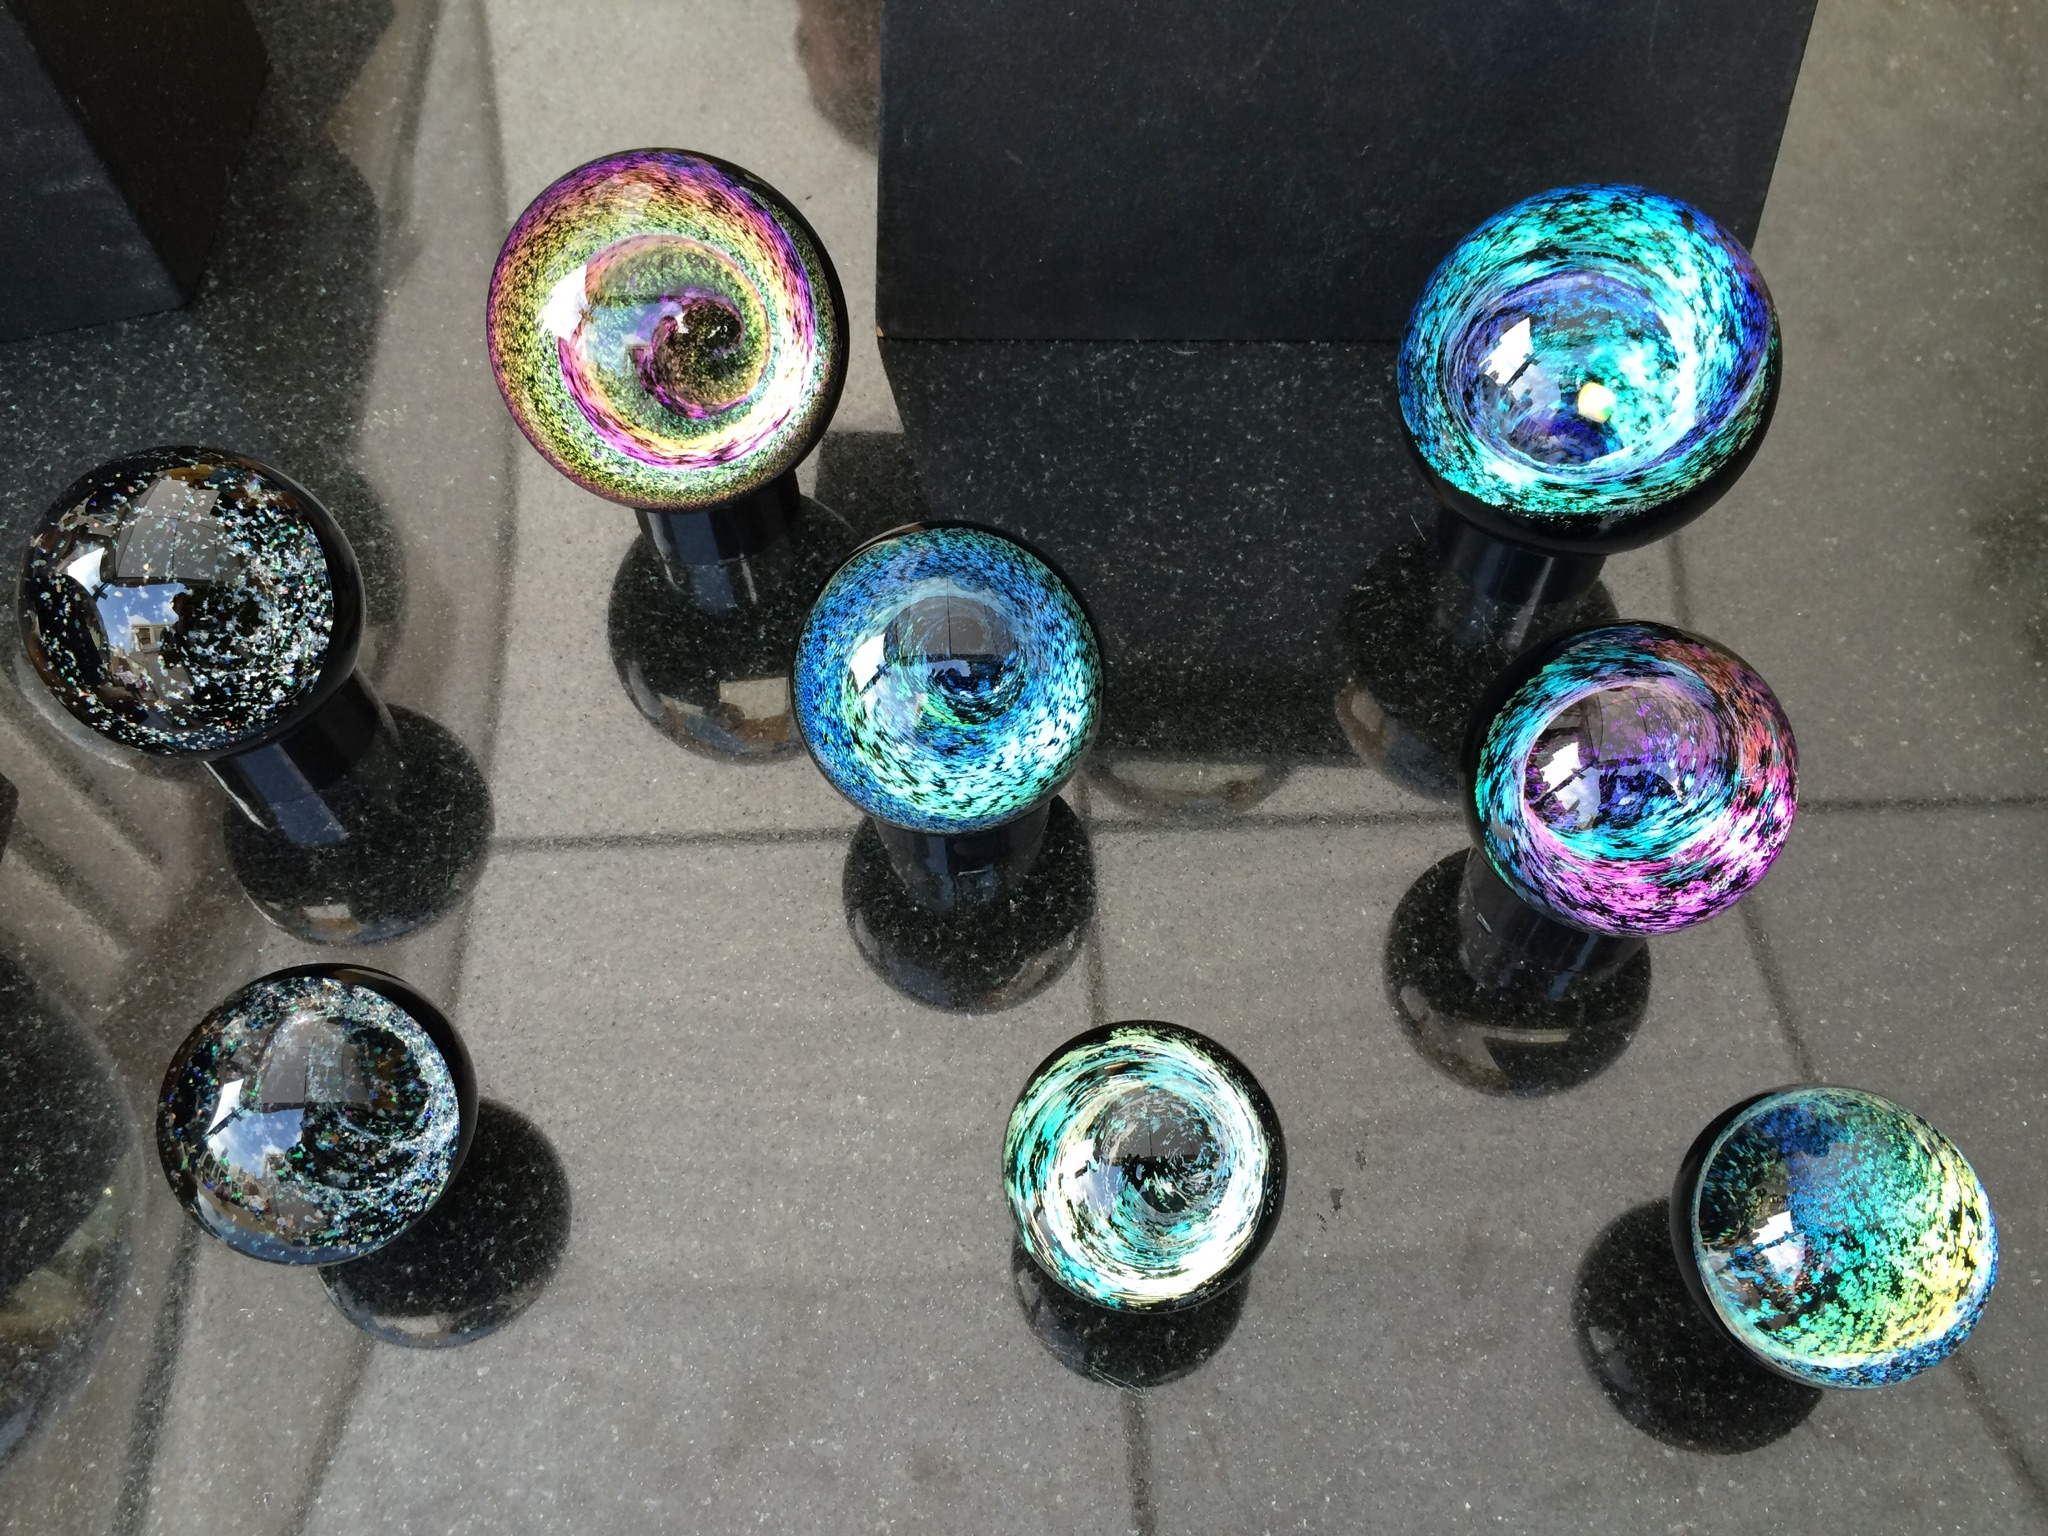 Exhibitions internal fire glass for Sugarloaf crafts festival chantilly va